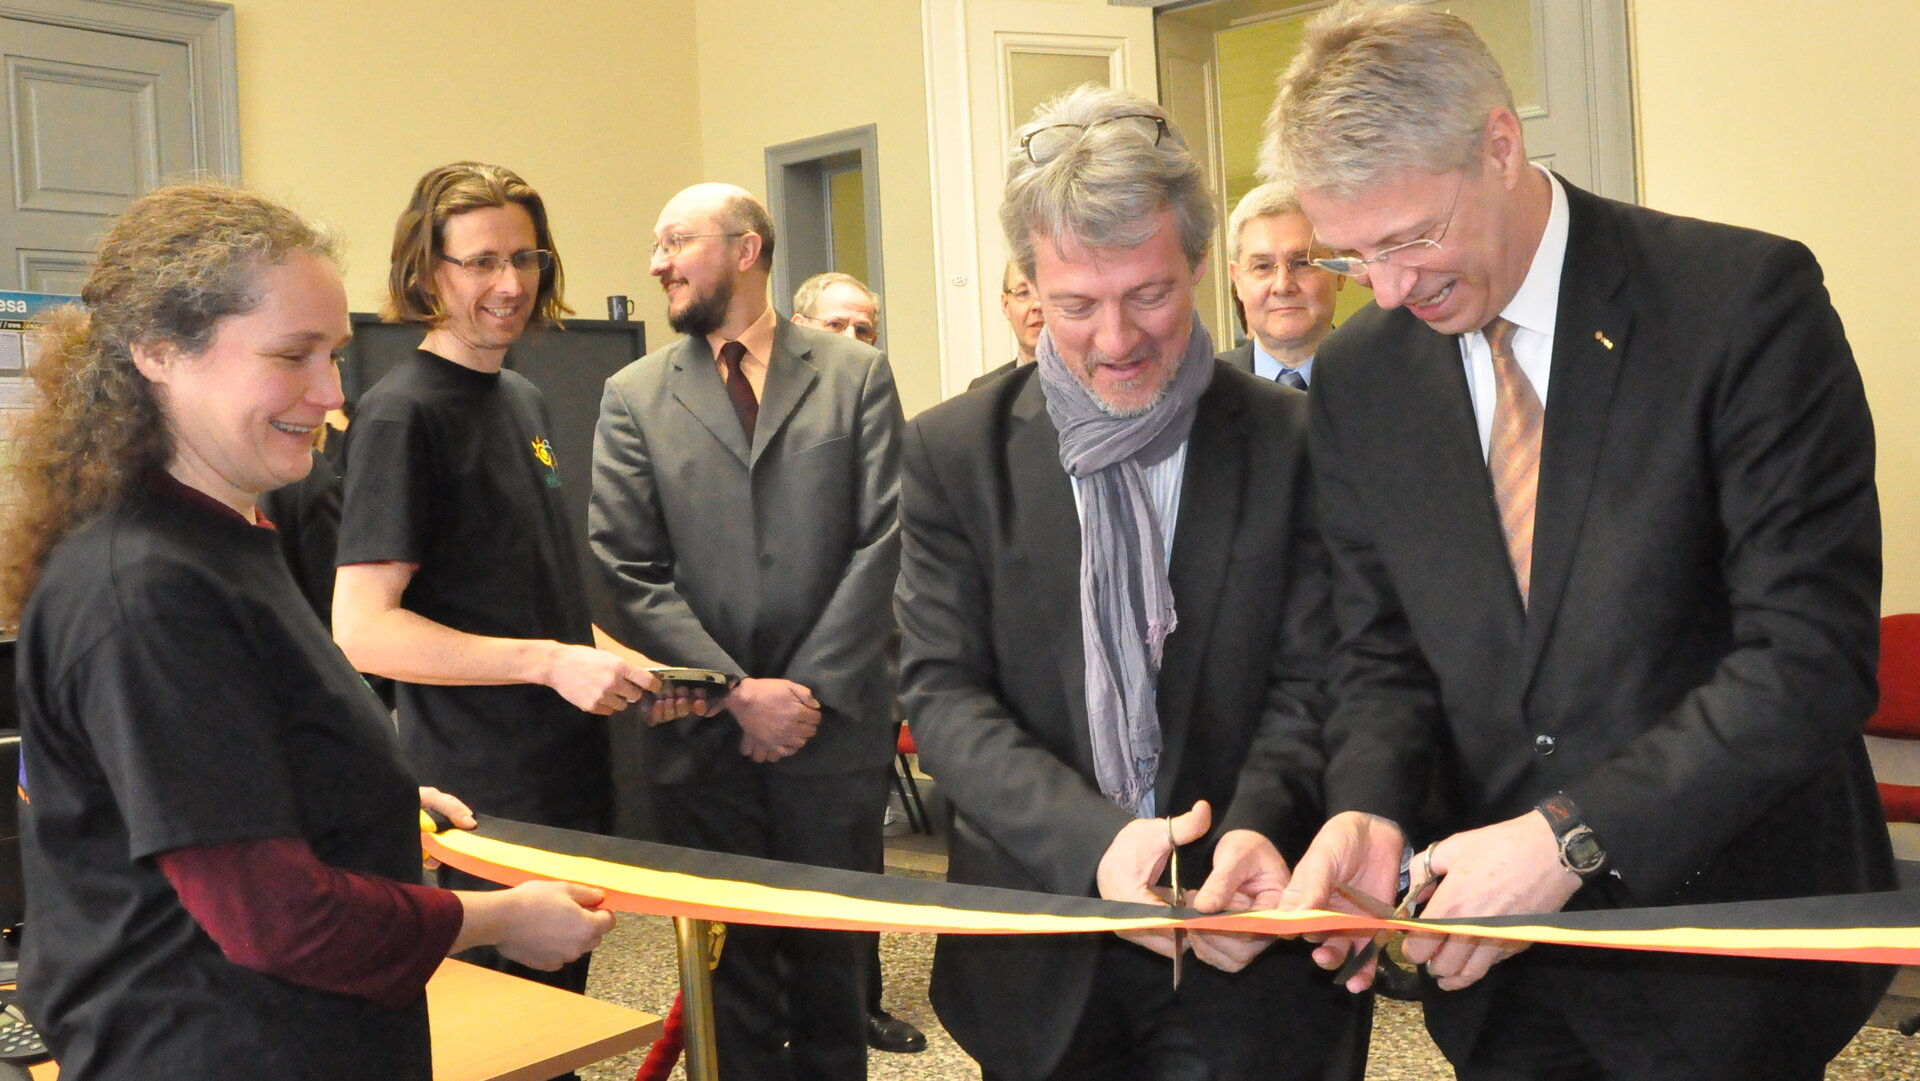 Ribbon cutting at the Royal Observatory